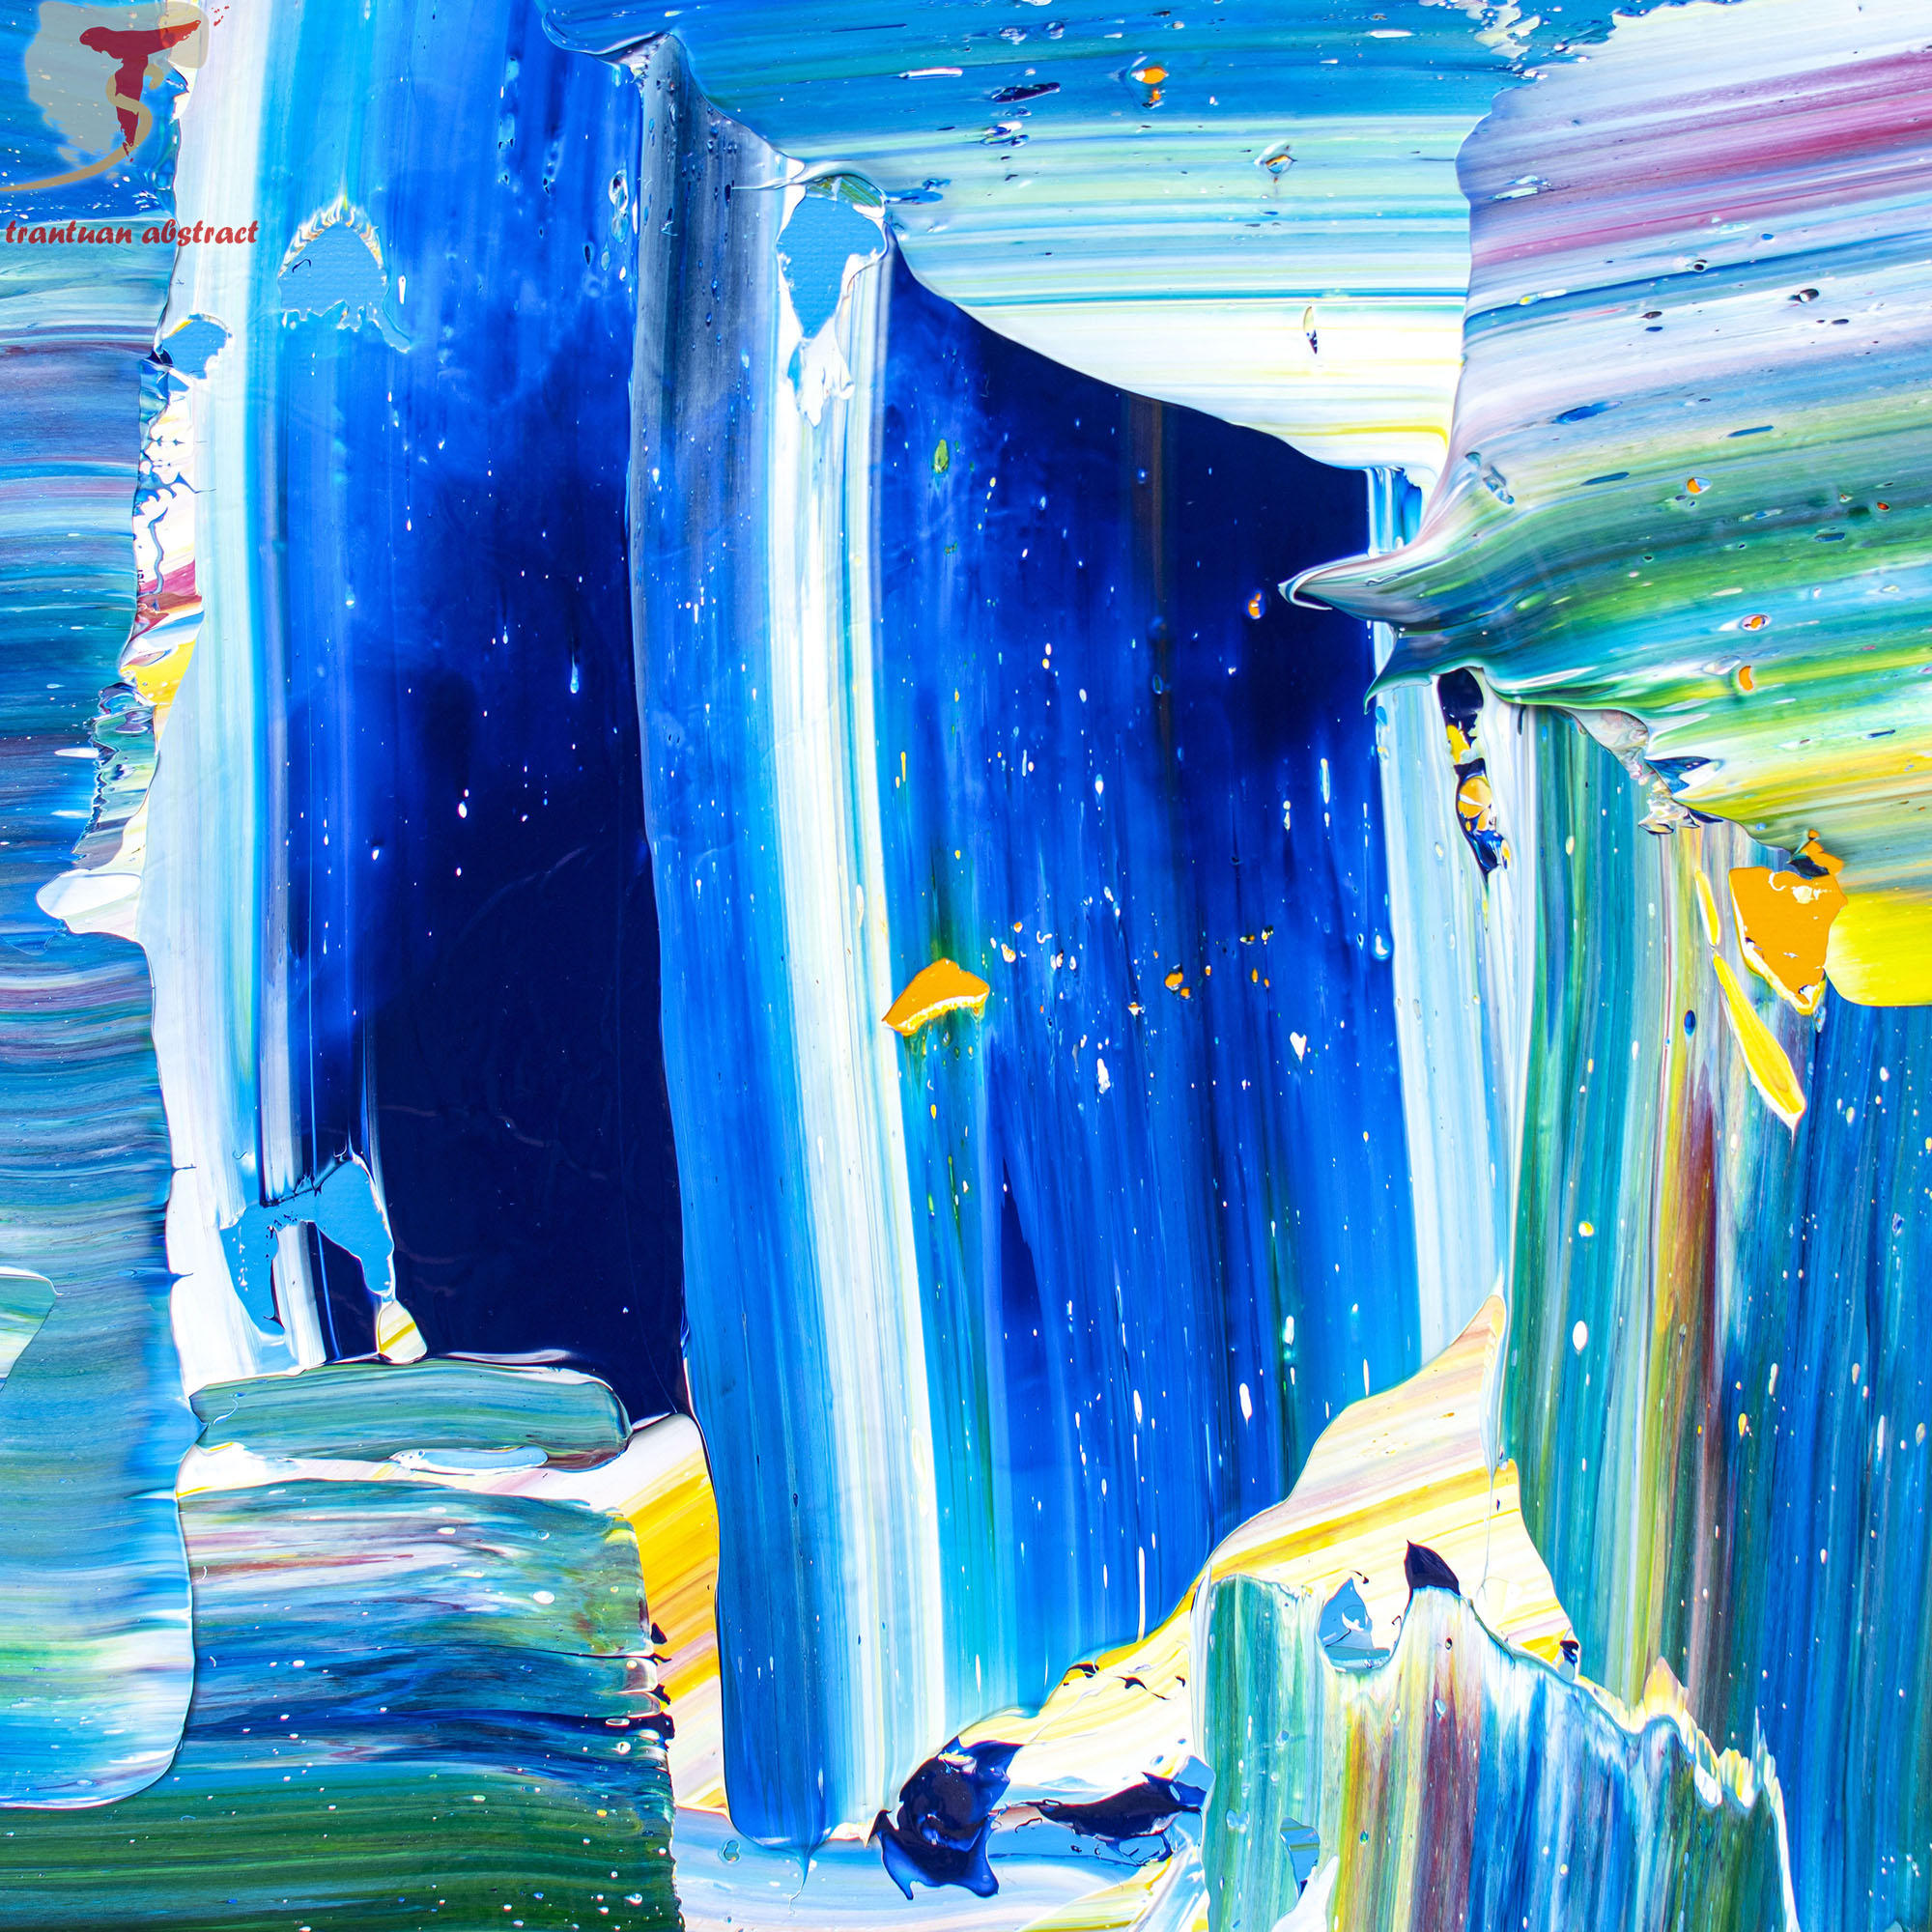 Tran Tuan Abstract Happy Blue Night 2021 135 x 80 x 5 cm Acrylic on Canvas Painting Detail